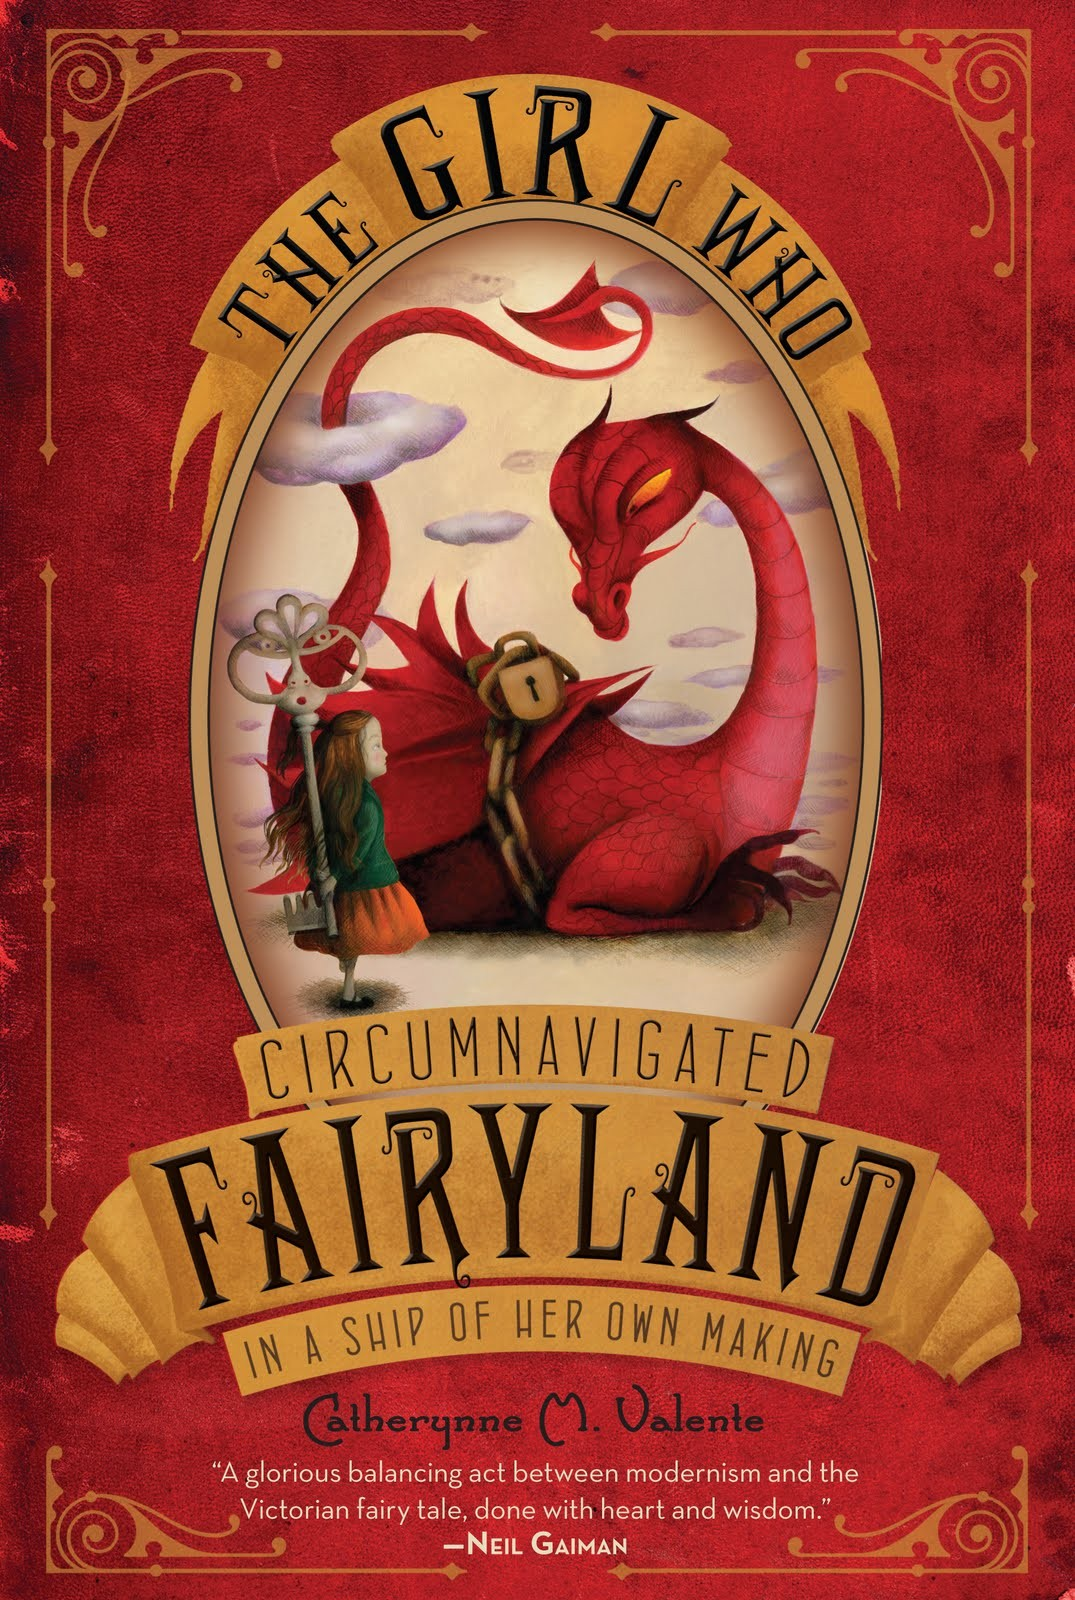 The Girl Who Circumnavigated Fairyland in a Ship of Her Own Making by Catherynne Valente